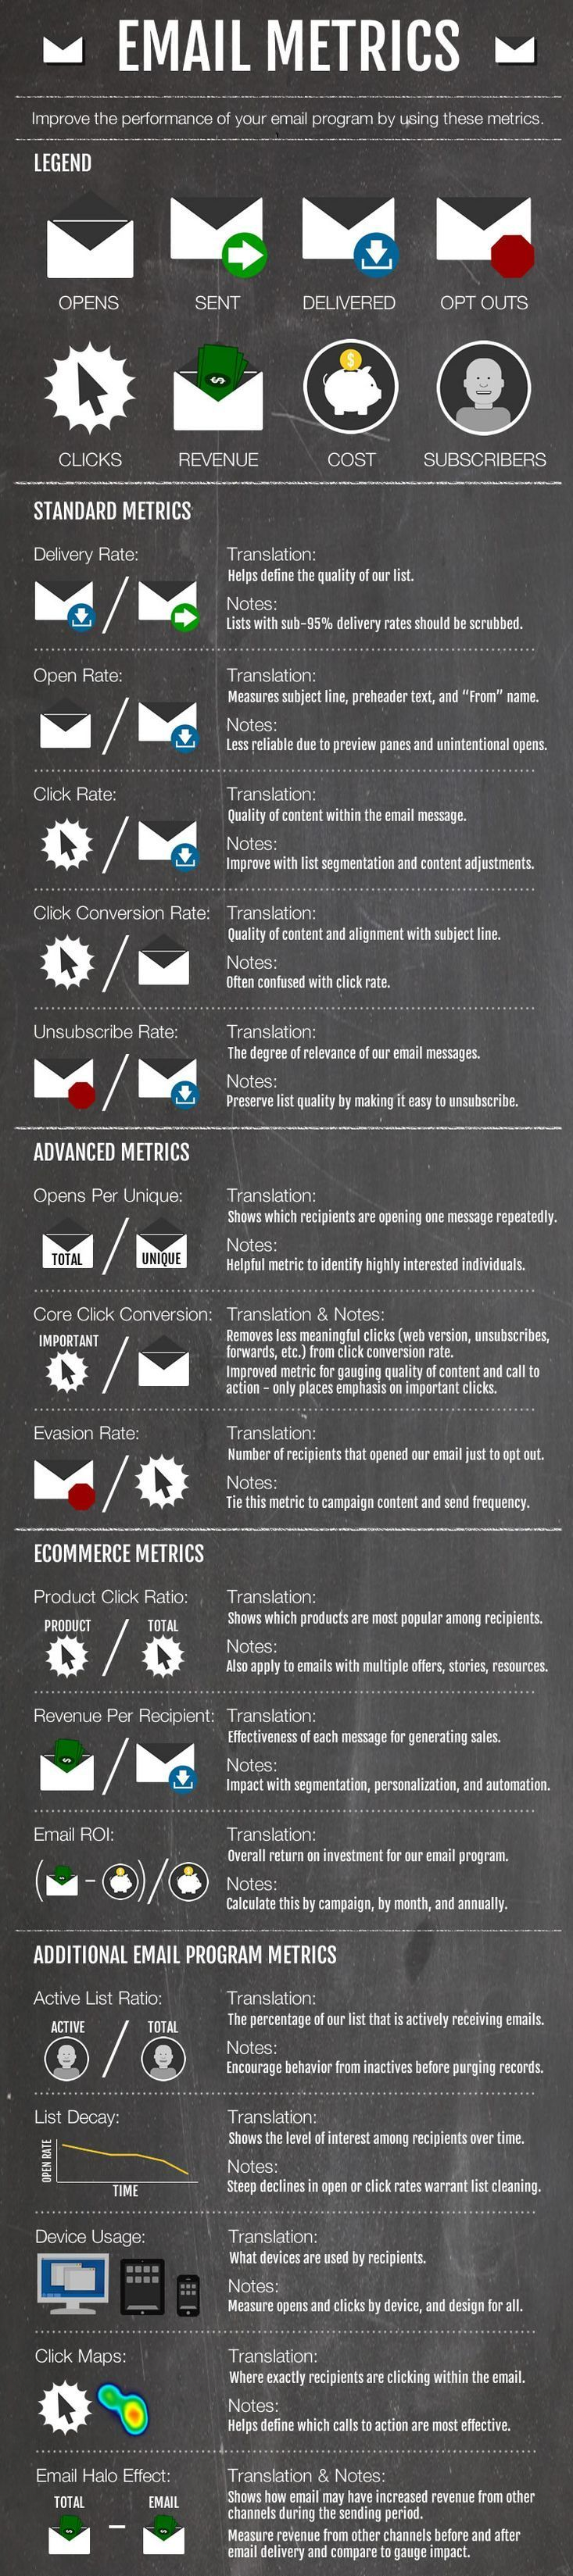 Email Metrics #emailmarketing #infographic